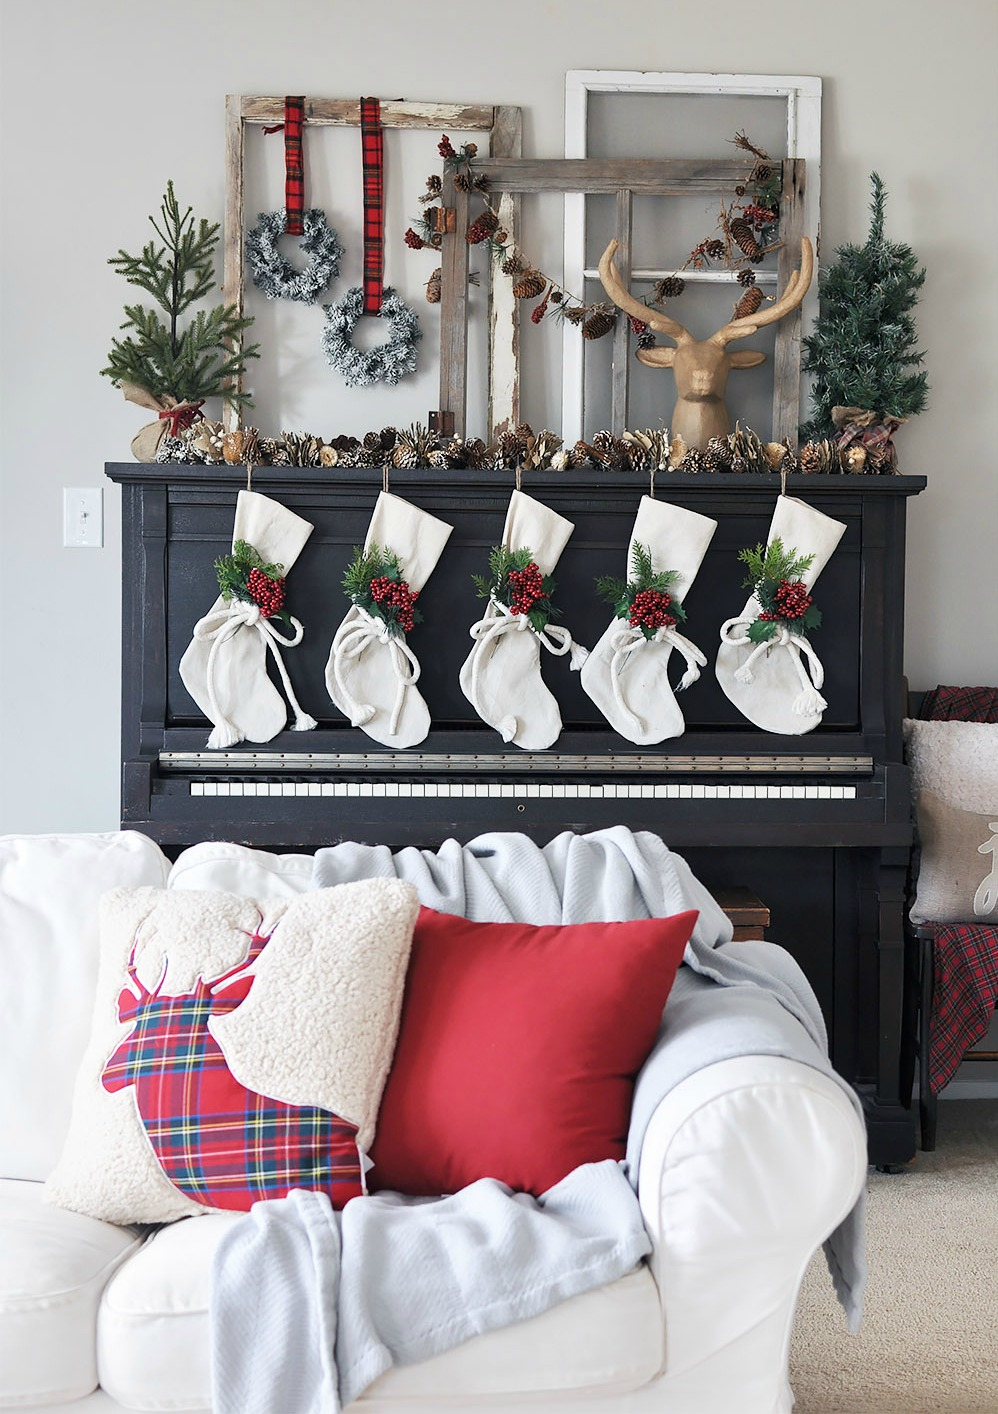 Design Christmas Mantel 38 christmas mantel decorations ideas for holiday fireplace decorating